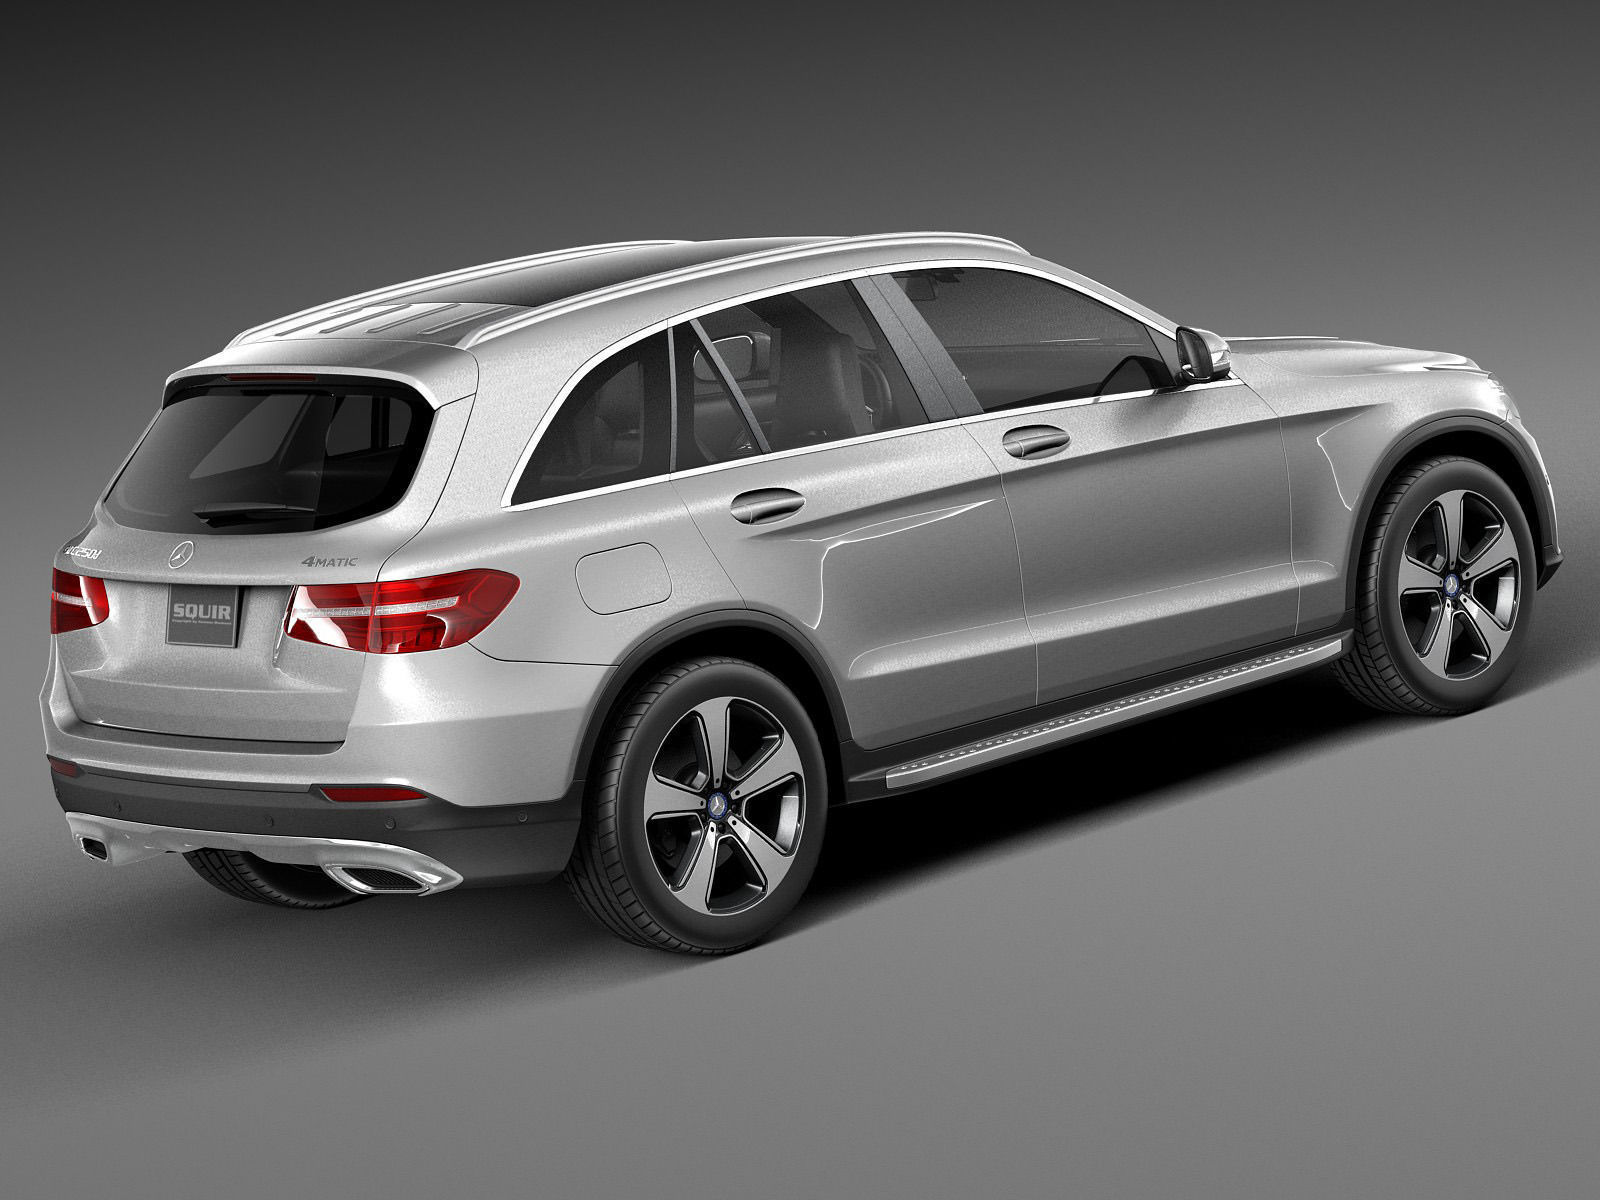 Mercedes Benz Glc 2016 3d Model Max Obj 3ds Fbx C4d Lwo Lw